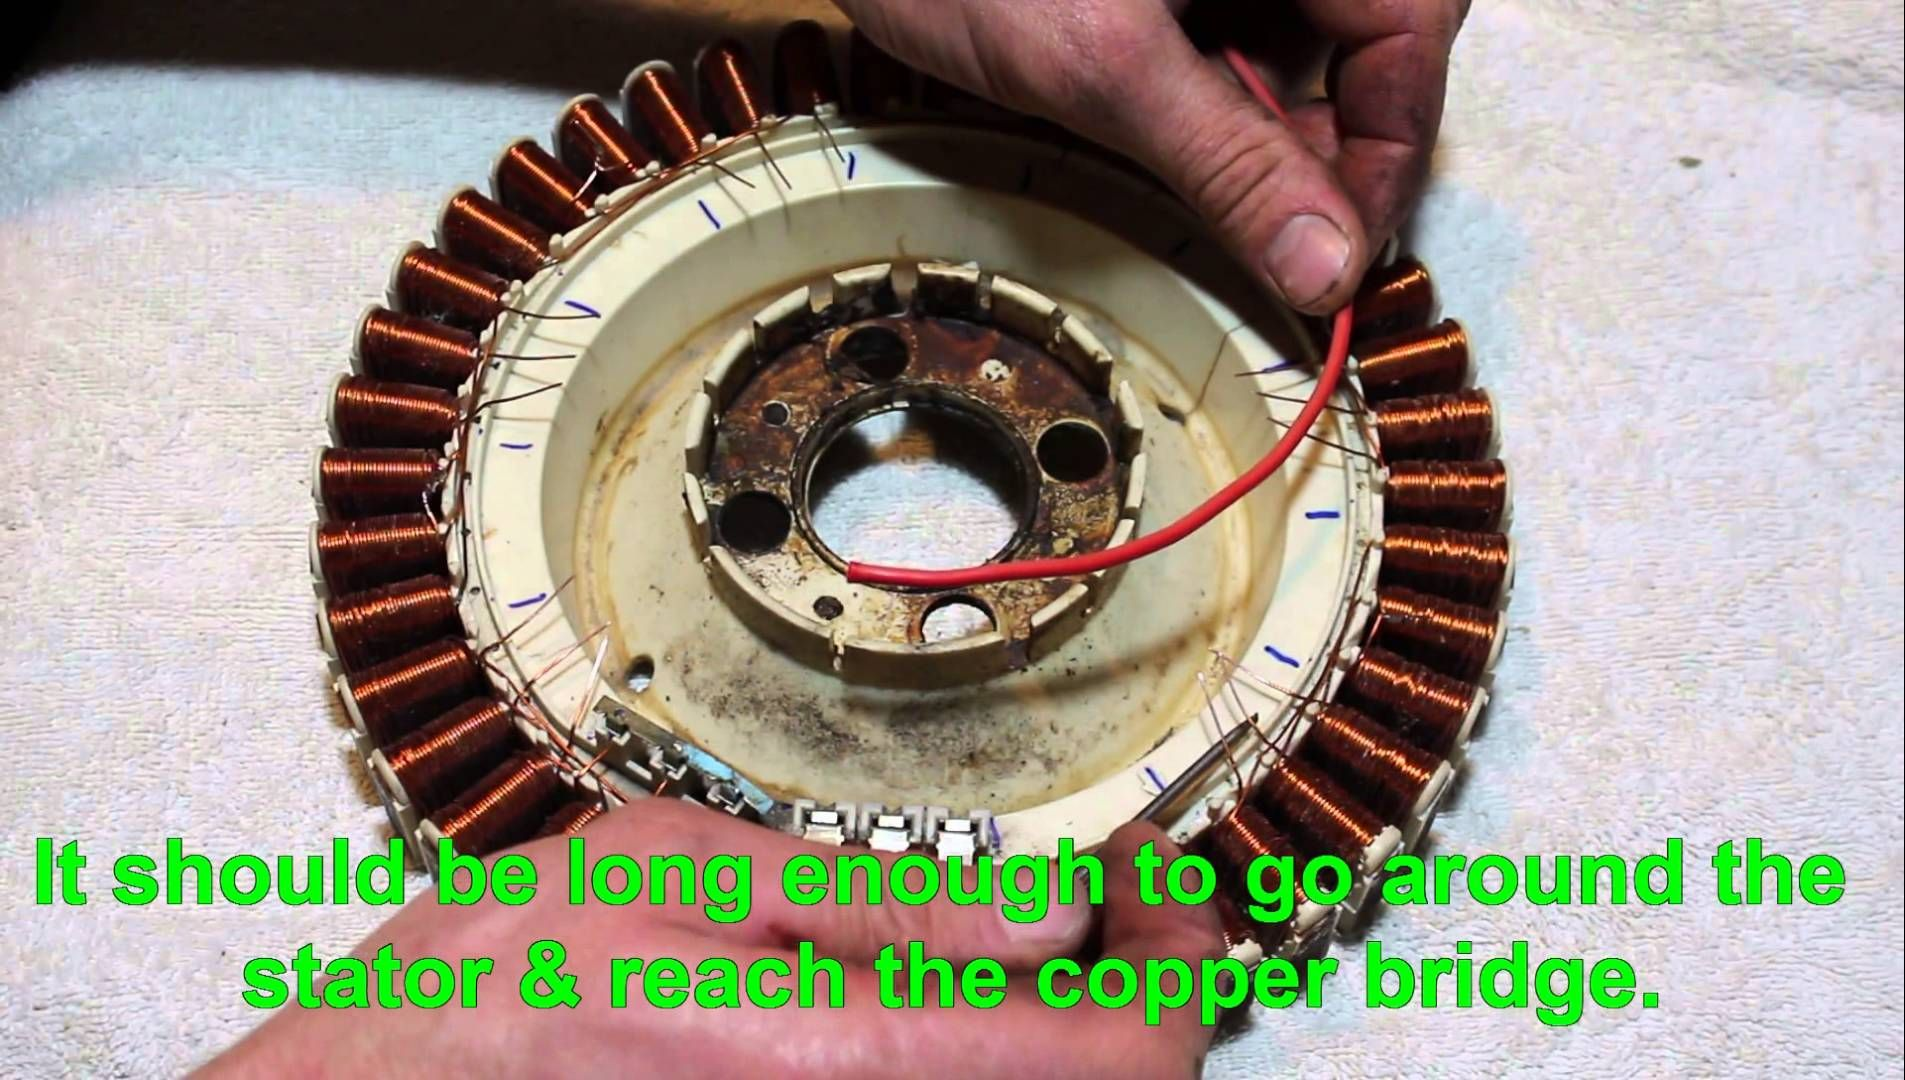 F&P washing machine stator rewiring tutorial | Homesteading